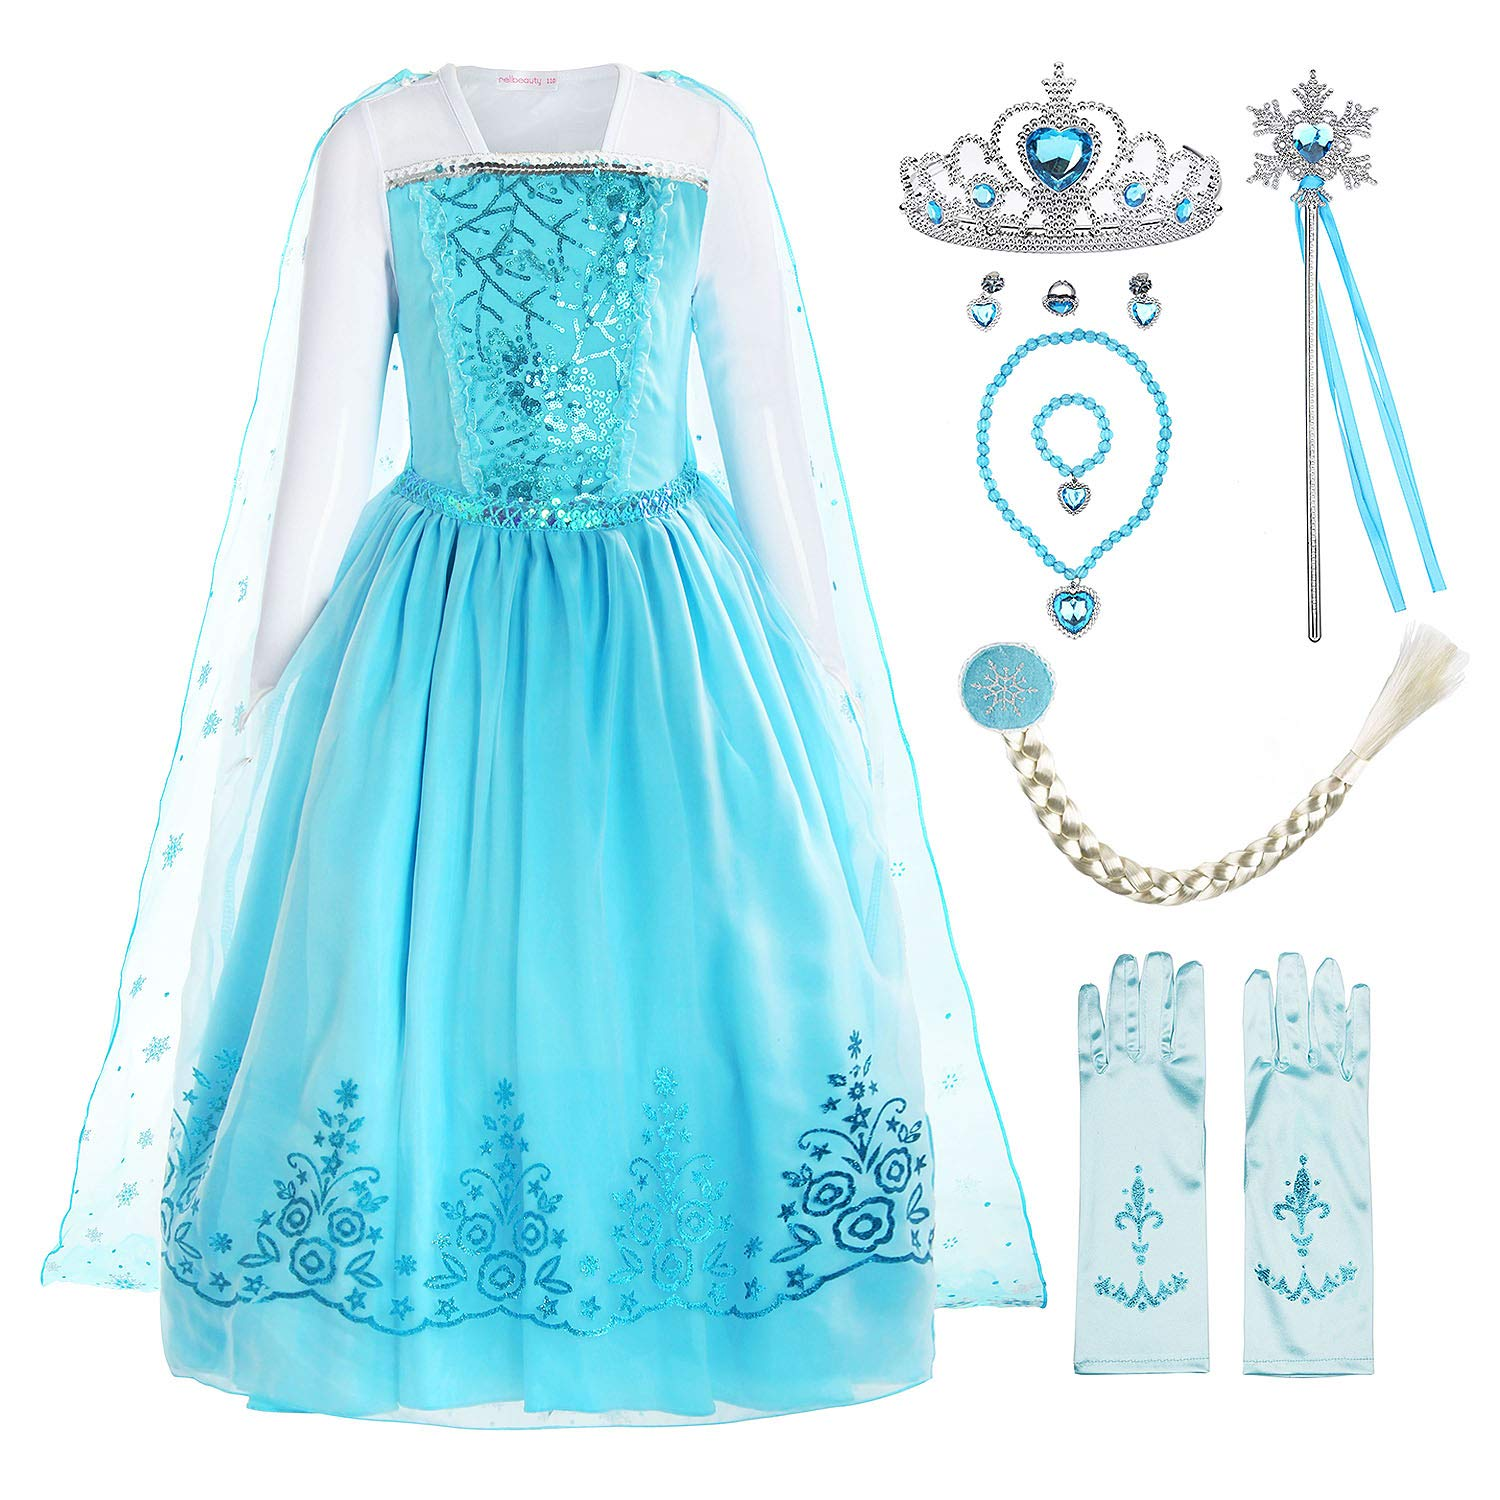 ReliBeauty Girls Sequin Princess Elsa Costume Long Sleeve Dress up, Light Blue(with Accessories), 4T(110)